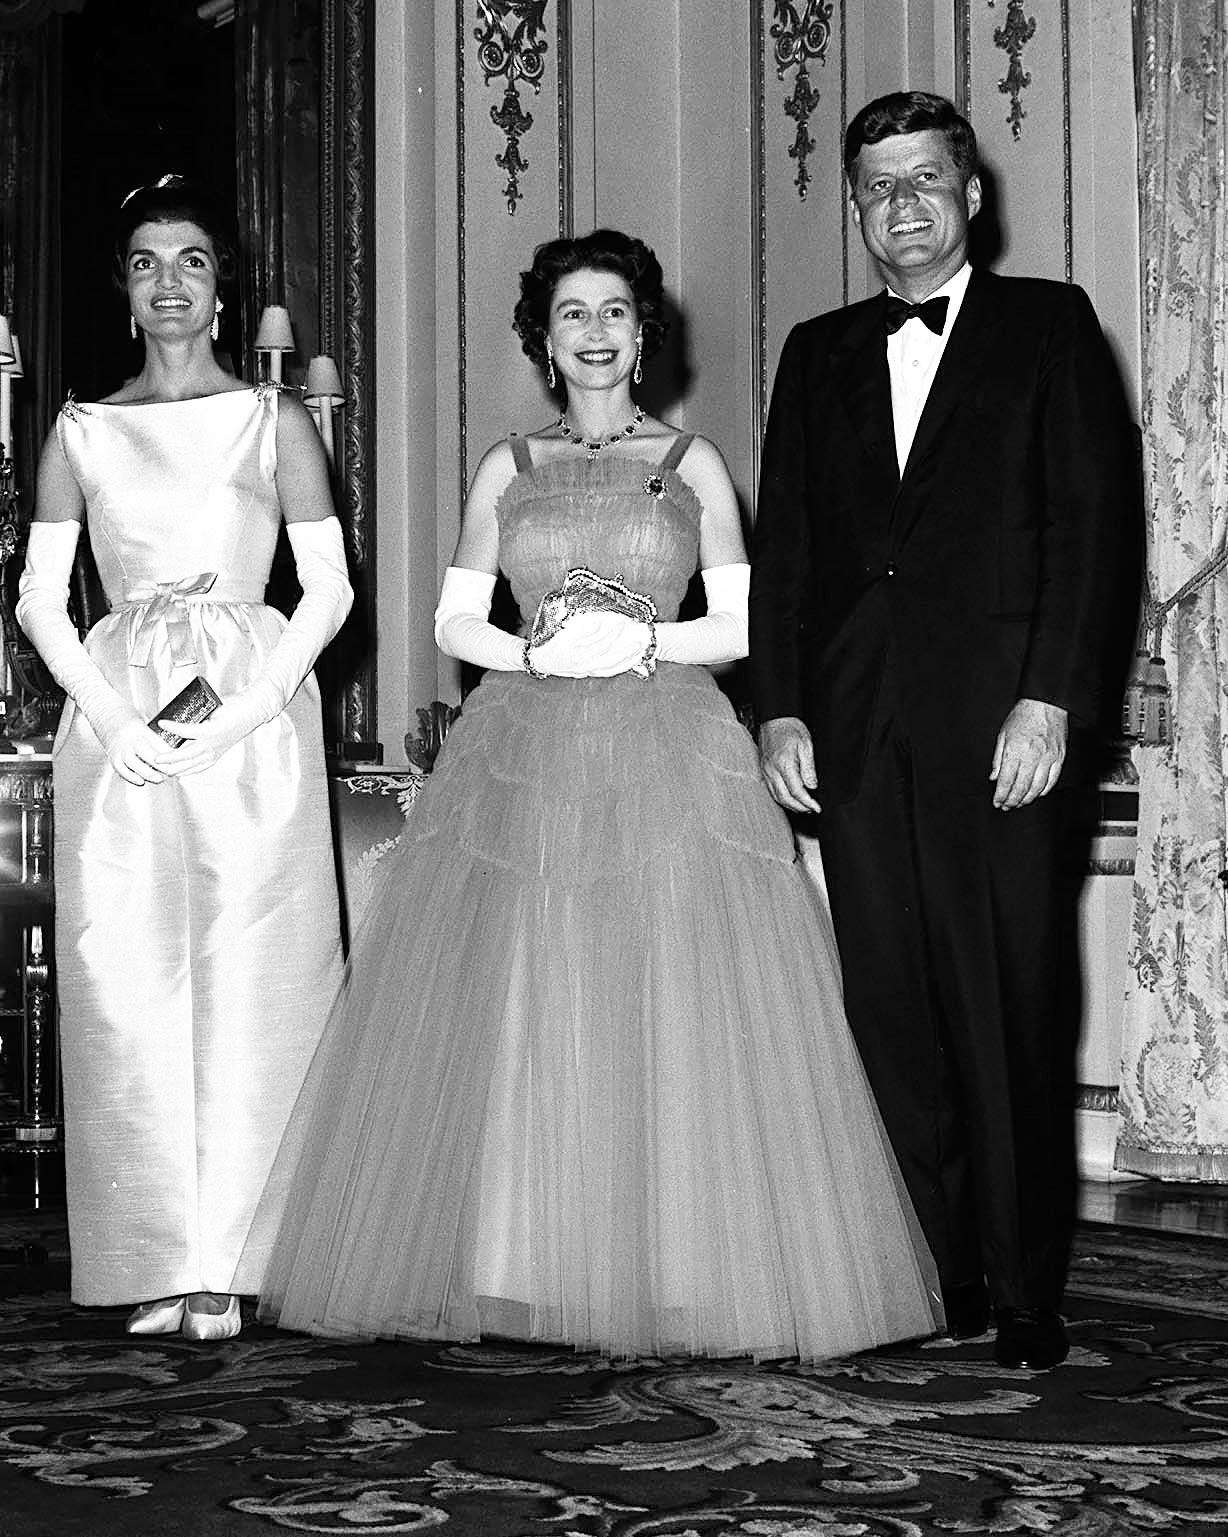 5th, June, 1961, American President, John F Kennedy, with first lady Jaqueline Kennedy, pictured at Buckingham Palace with Queen Elizabeth II